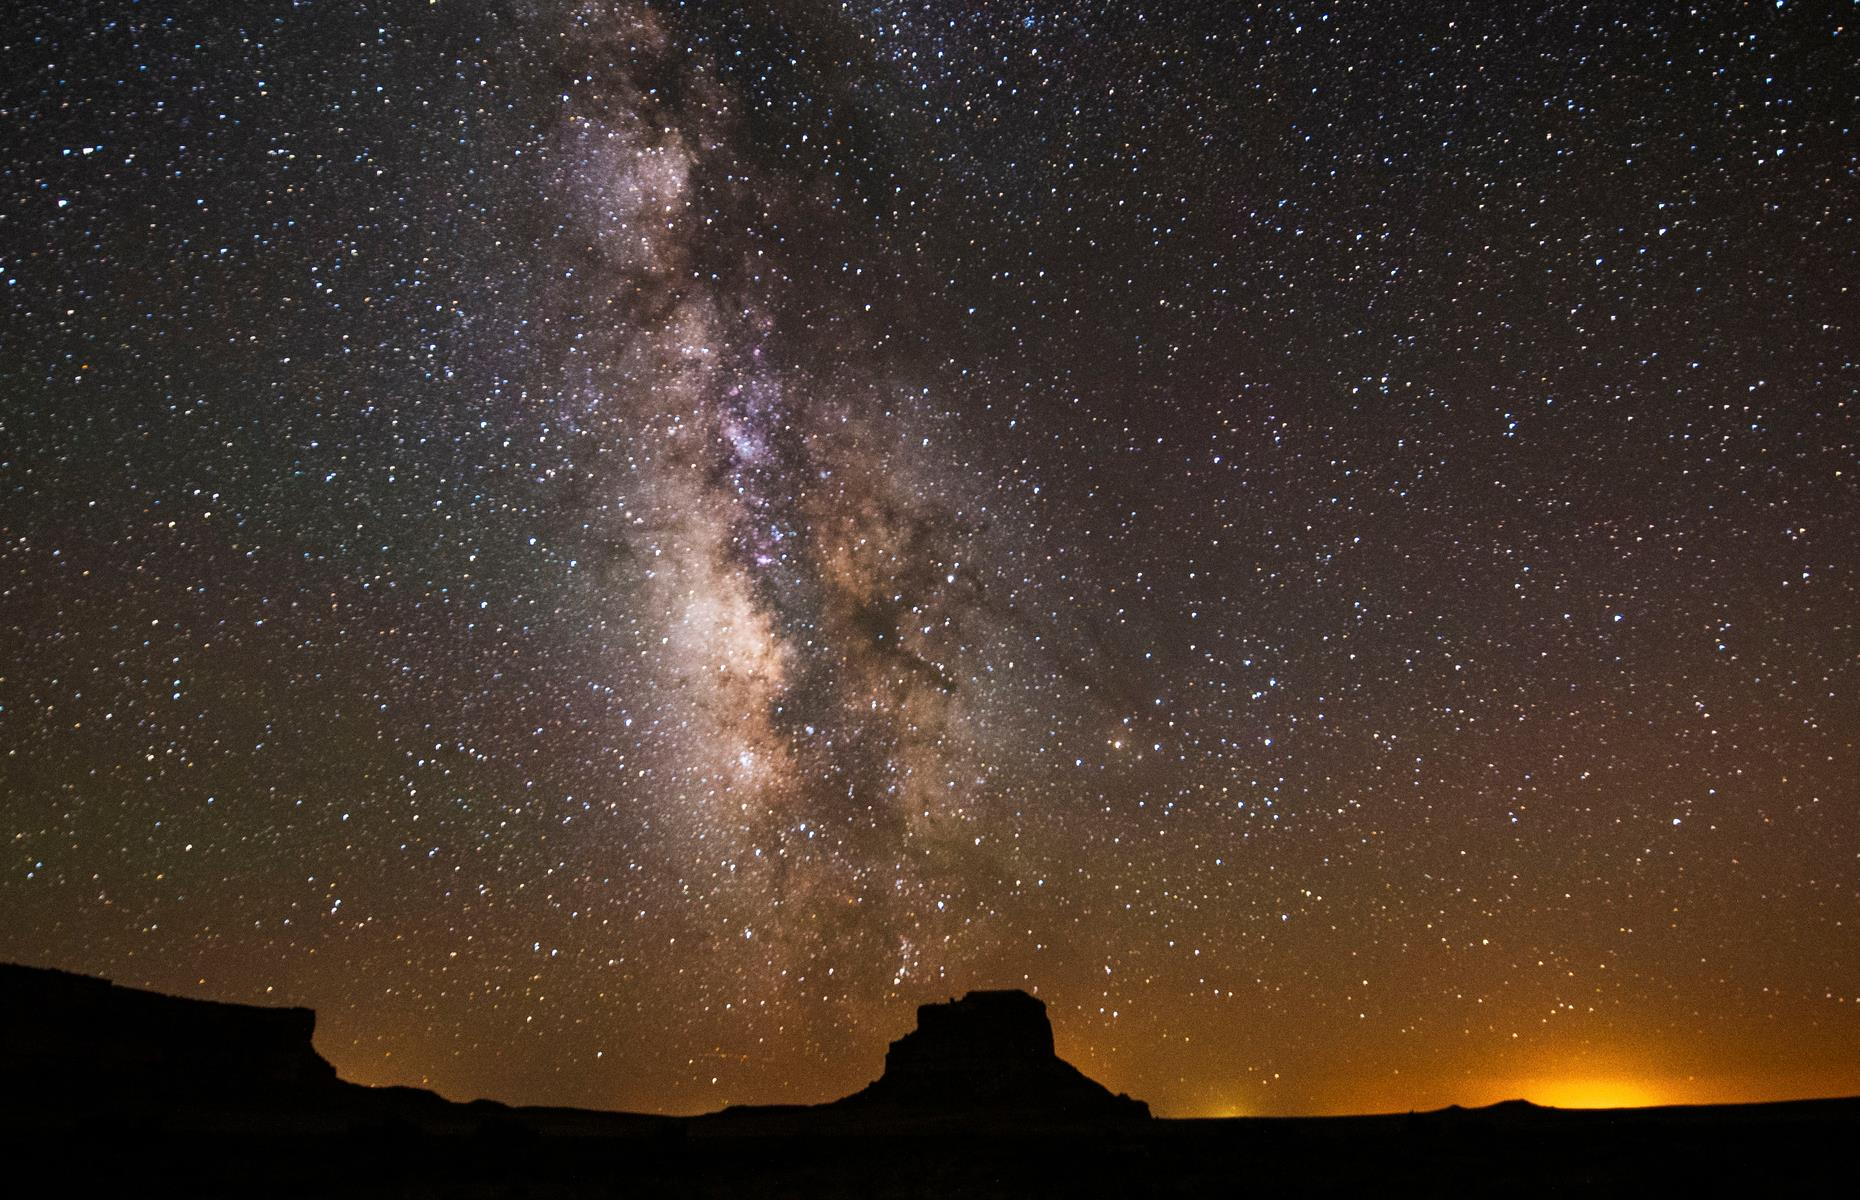 Slide 4 of 30: Named an International Dark Sky Park in 2013, Chaco founded its own Night Sky Program in 1991. It strives to provide the same viewing conditions Chacoan people enjoyed a millennia ago, with no permanent outdoor lighting found across 99% of the park. The park typically offers a range of public astronomy programs too, but check the NPS website for up-to-date schedules.